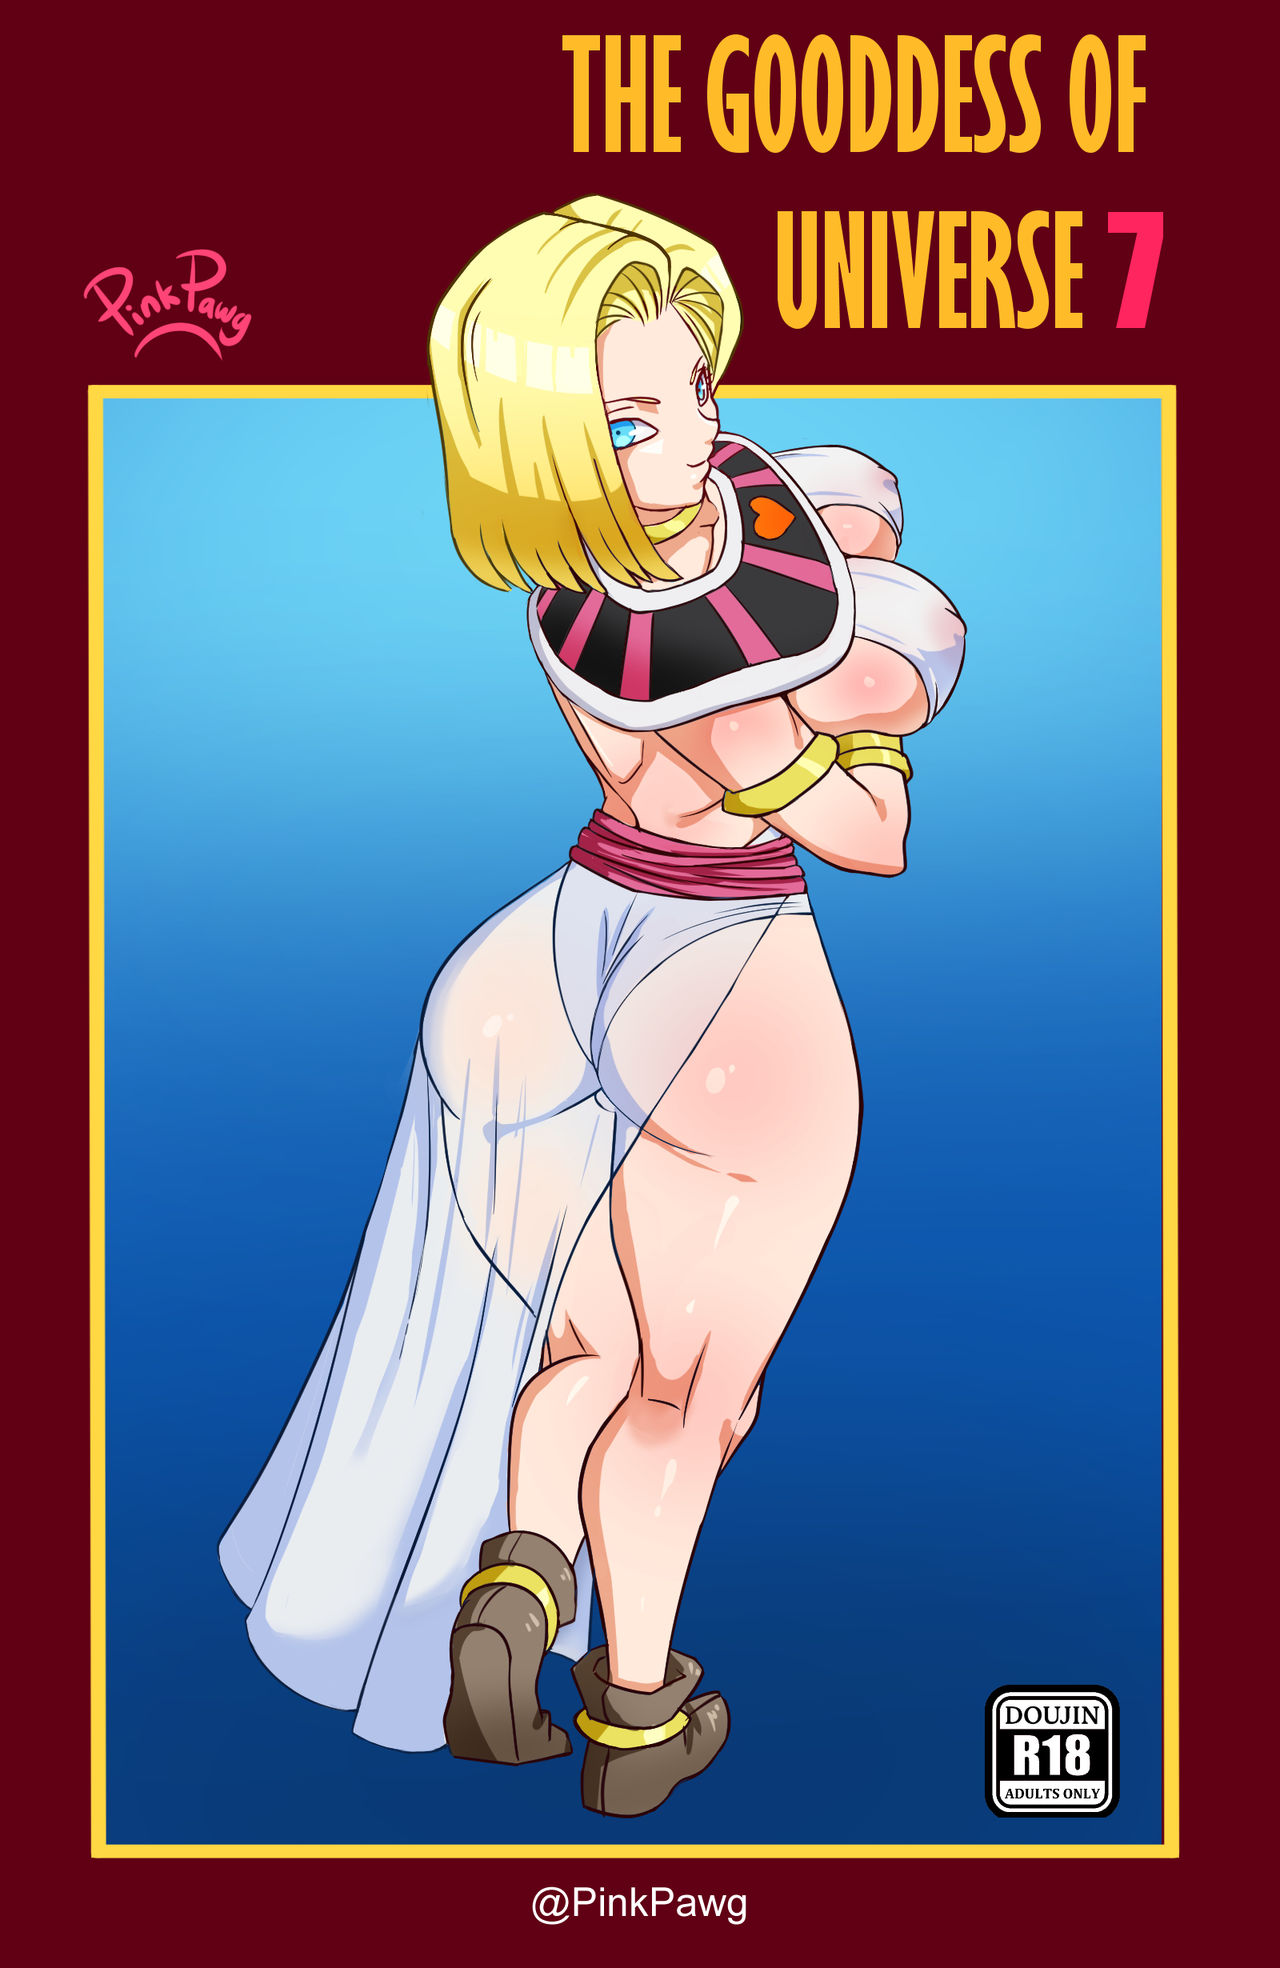 Android 18 Anime Porn Solo the goddess of universe 7 - dragon ball super [pinkpawg